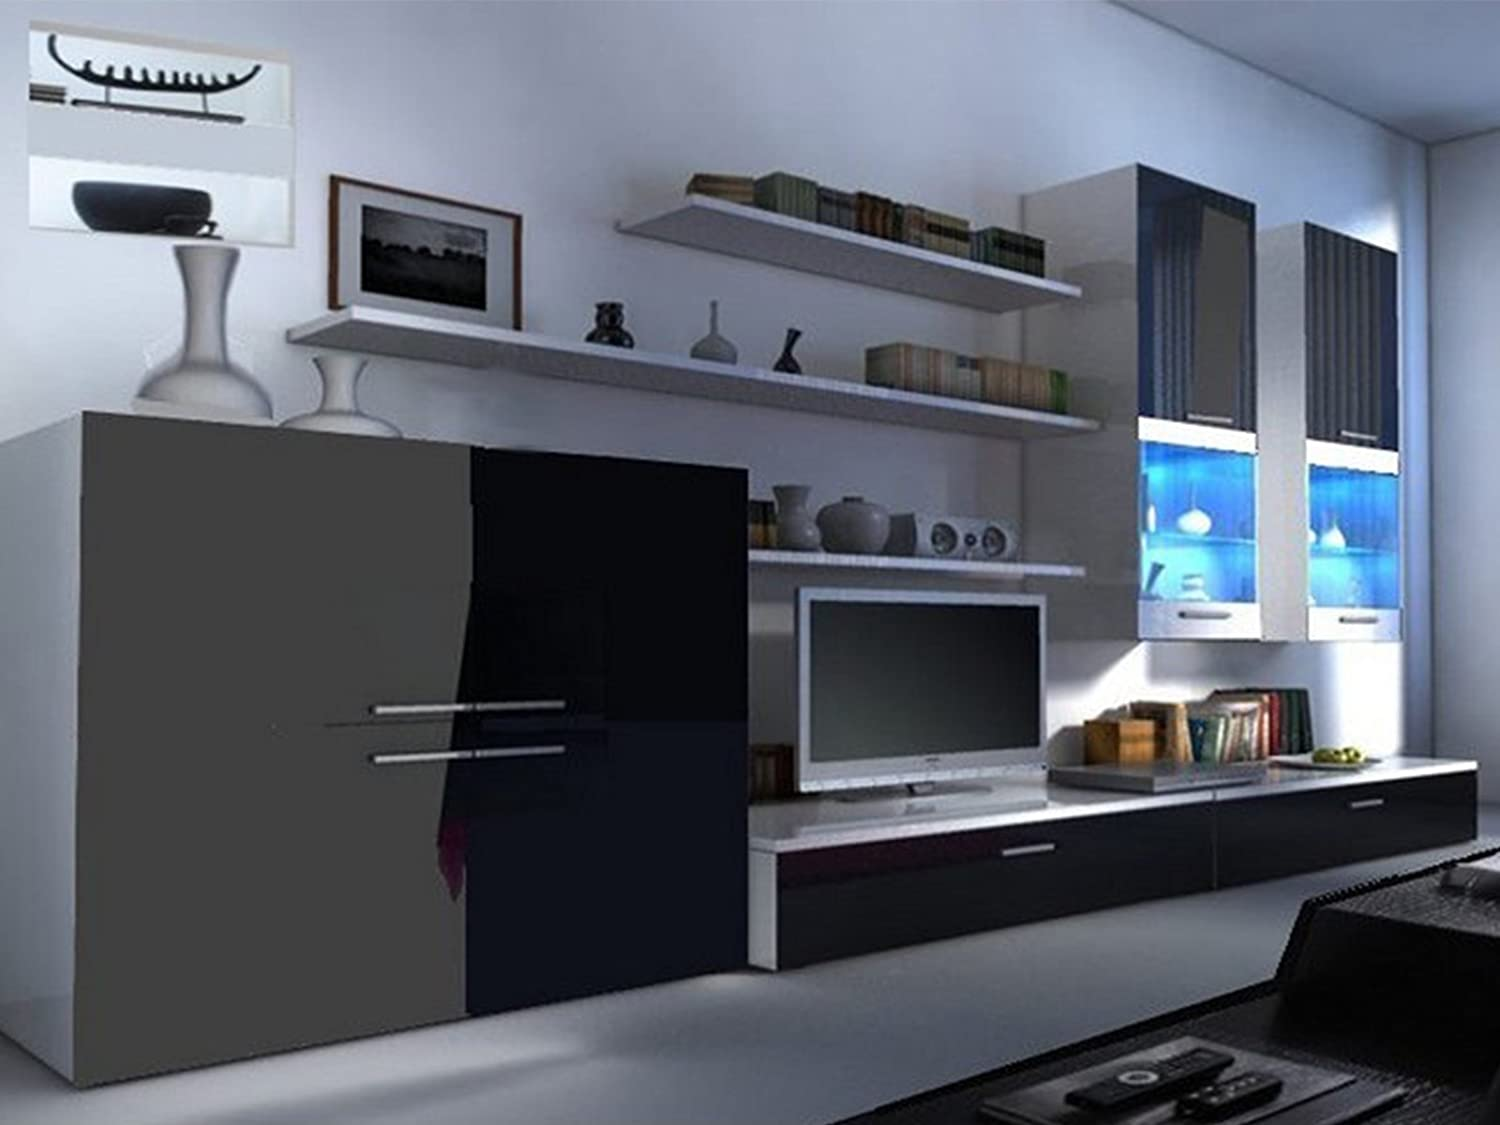 Beta Living Room Set   High Gloss Entertainment Package | Wall Units | TV  Stand | LED Lights | Floating Shelves | Cabinets (Black U0026 White):  Amazon.co.uk: ...